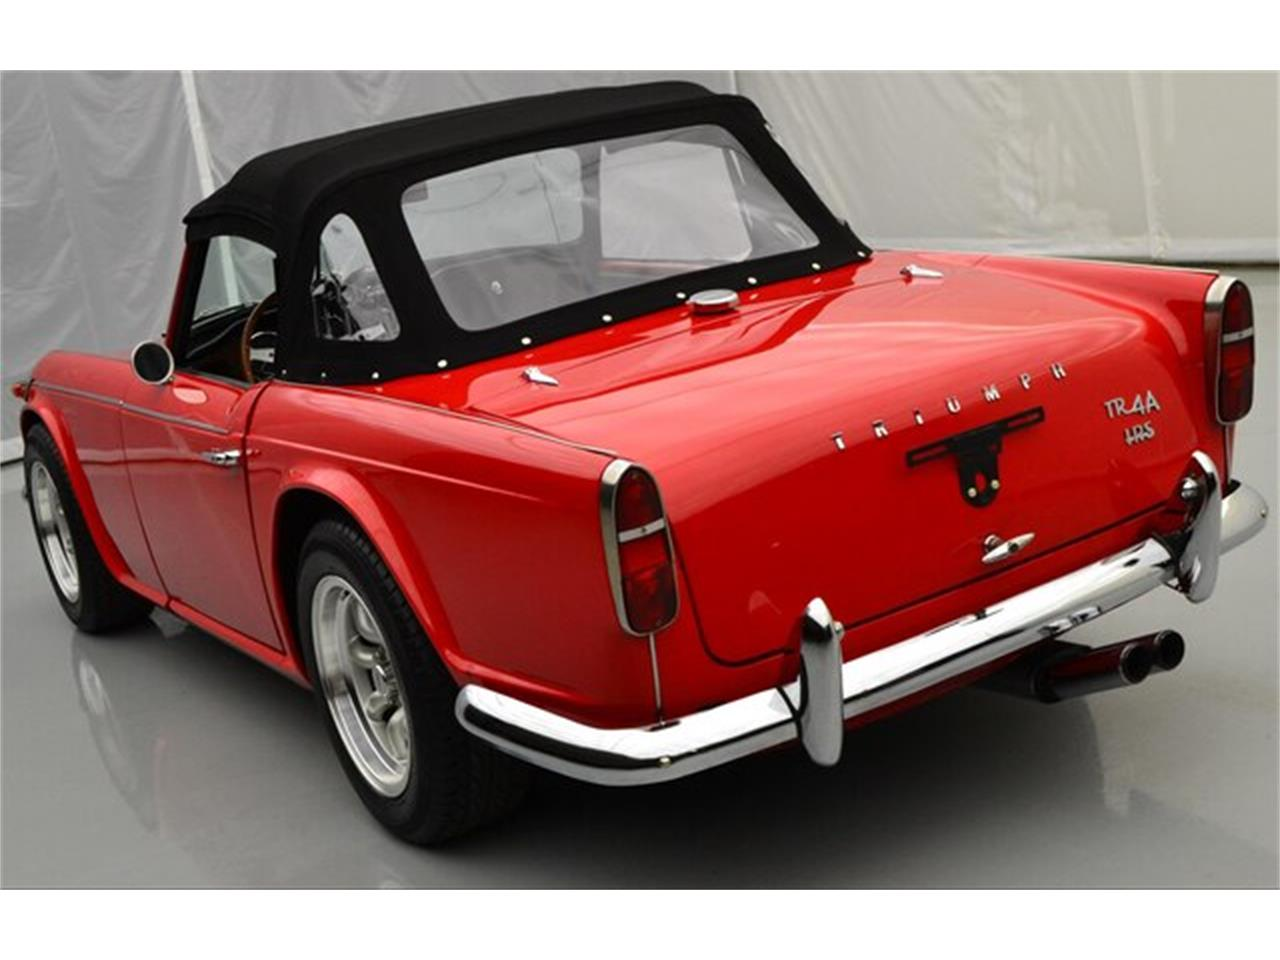 Large Picture of Classic '66 TR4 located in Hickory North Carolina - $29,995.00 - PP7L